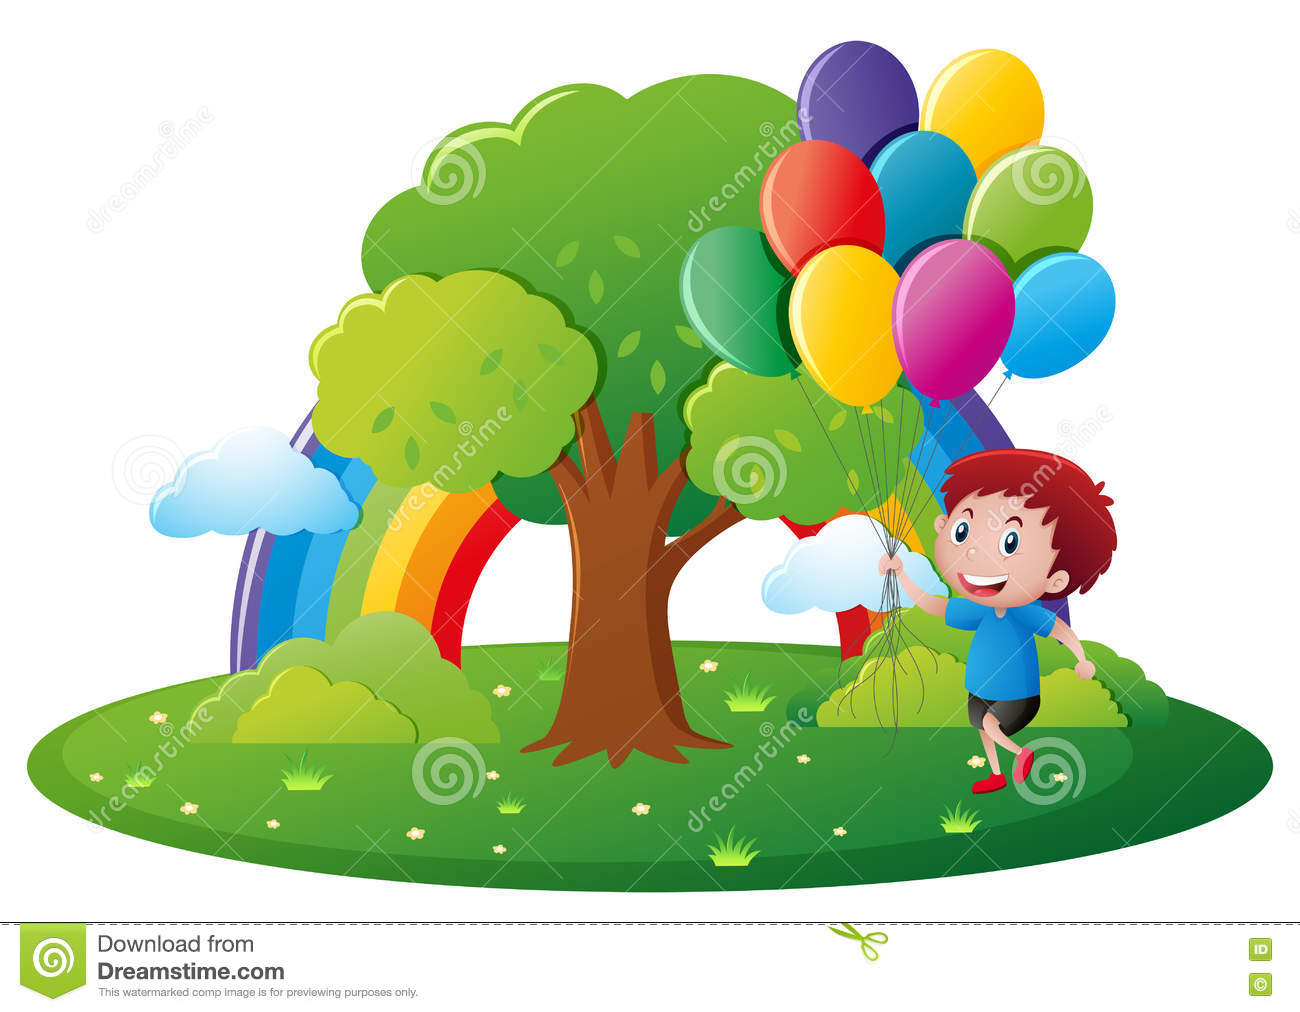 Park Scene With Boy And Balloons Stock Vector.